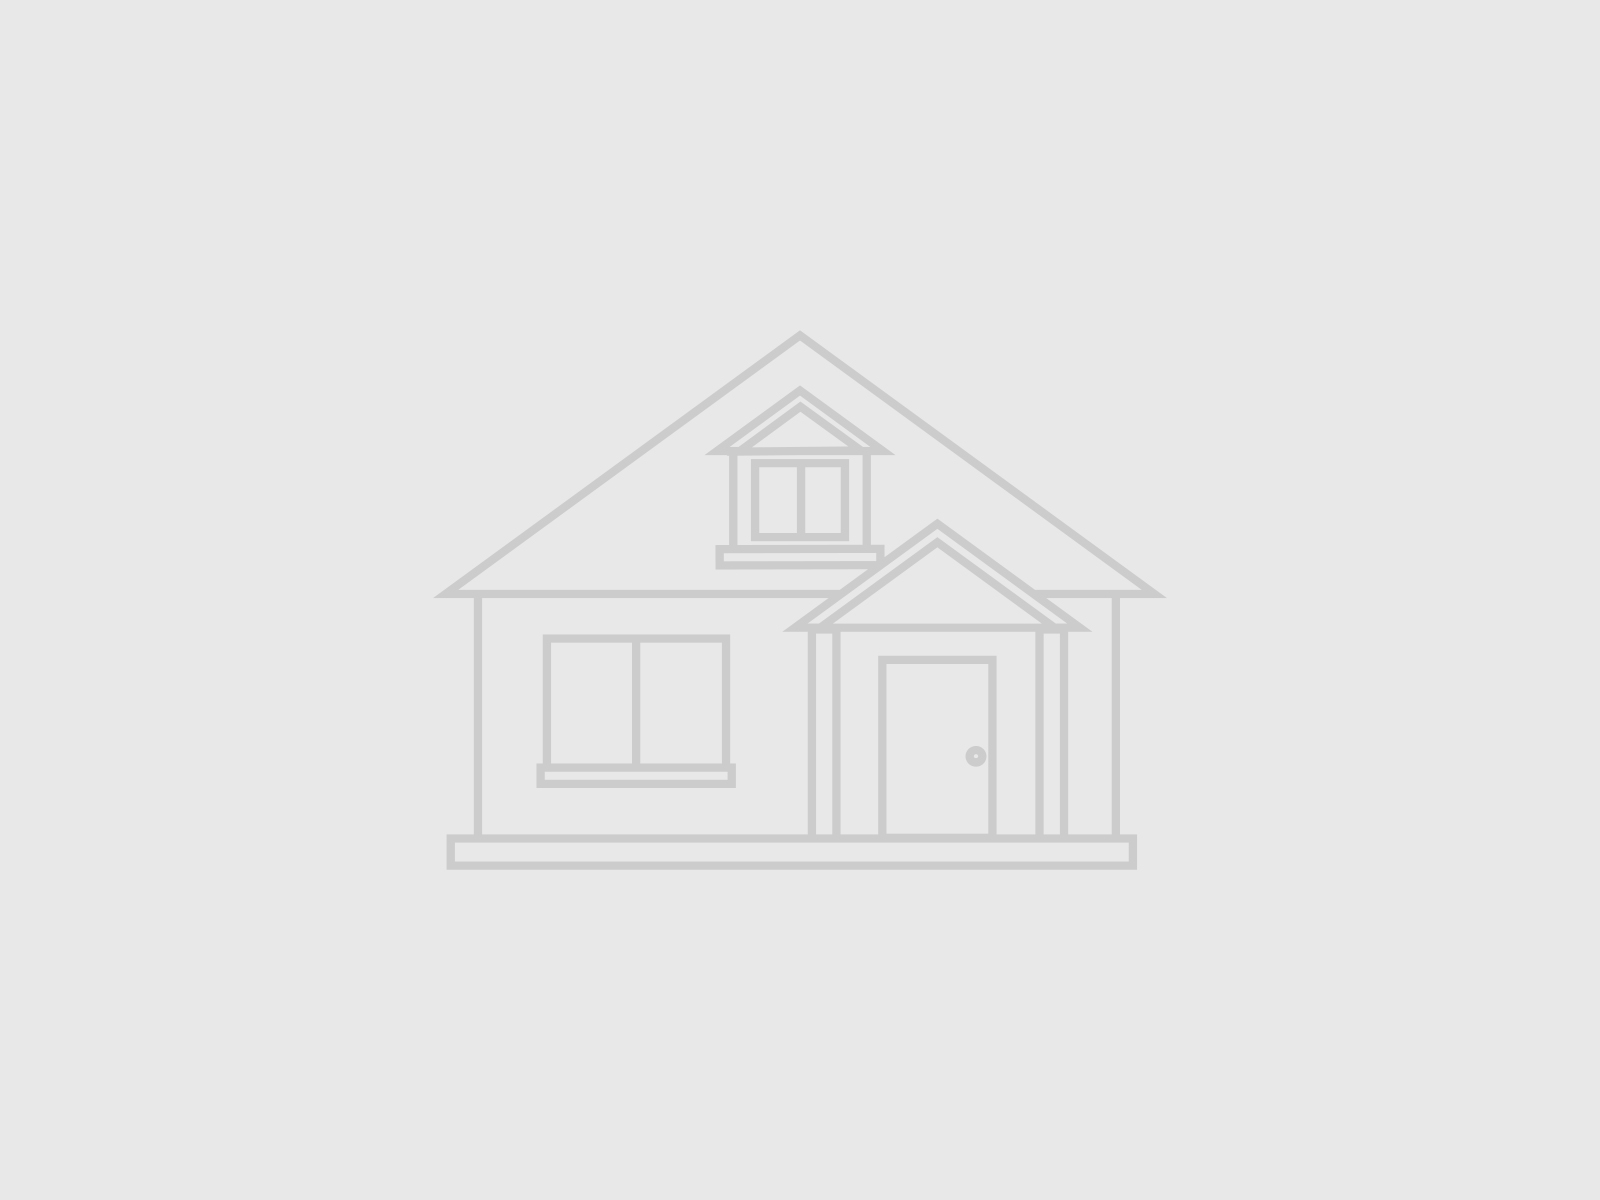 Single Family Homes for Sale at 505 Still Hollow Run O Fallon, Illinois 62269 United States